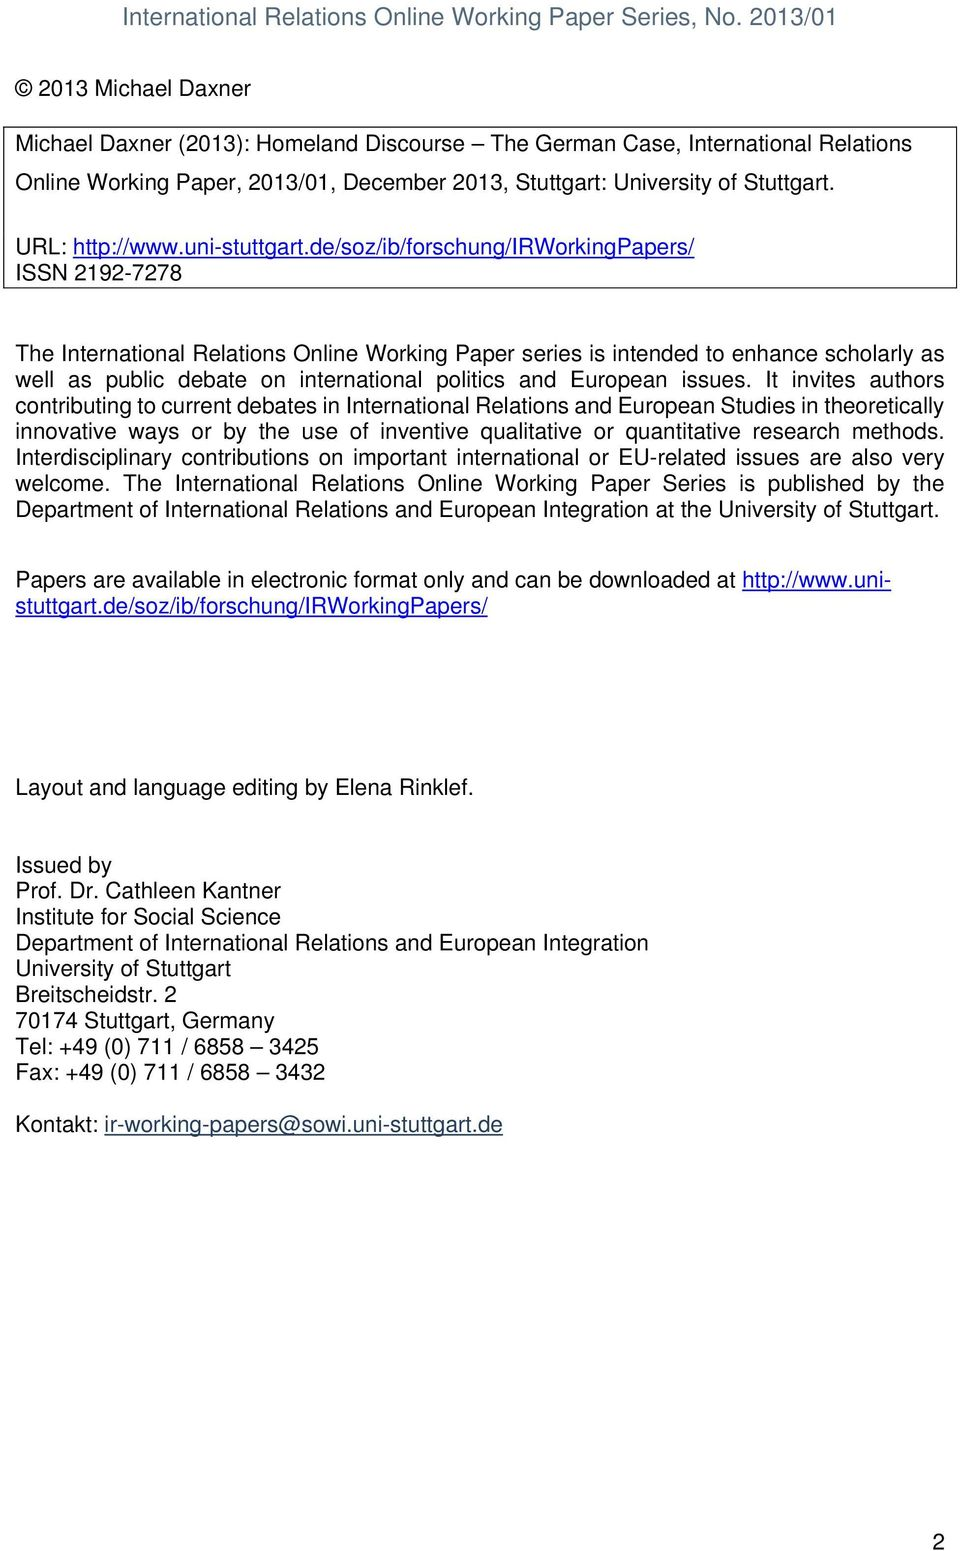 de/soz/ib/forschung/irworkingpapers/ ISSN 2192-7278 The International Relations Online Working Paper series is intended to enhance scholarly as well as public debate on international politics and